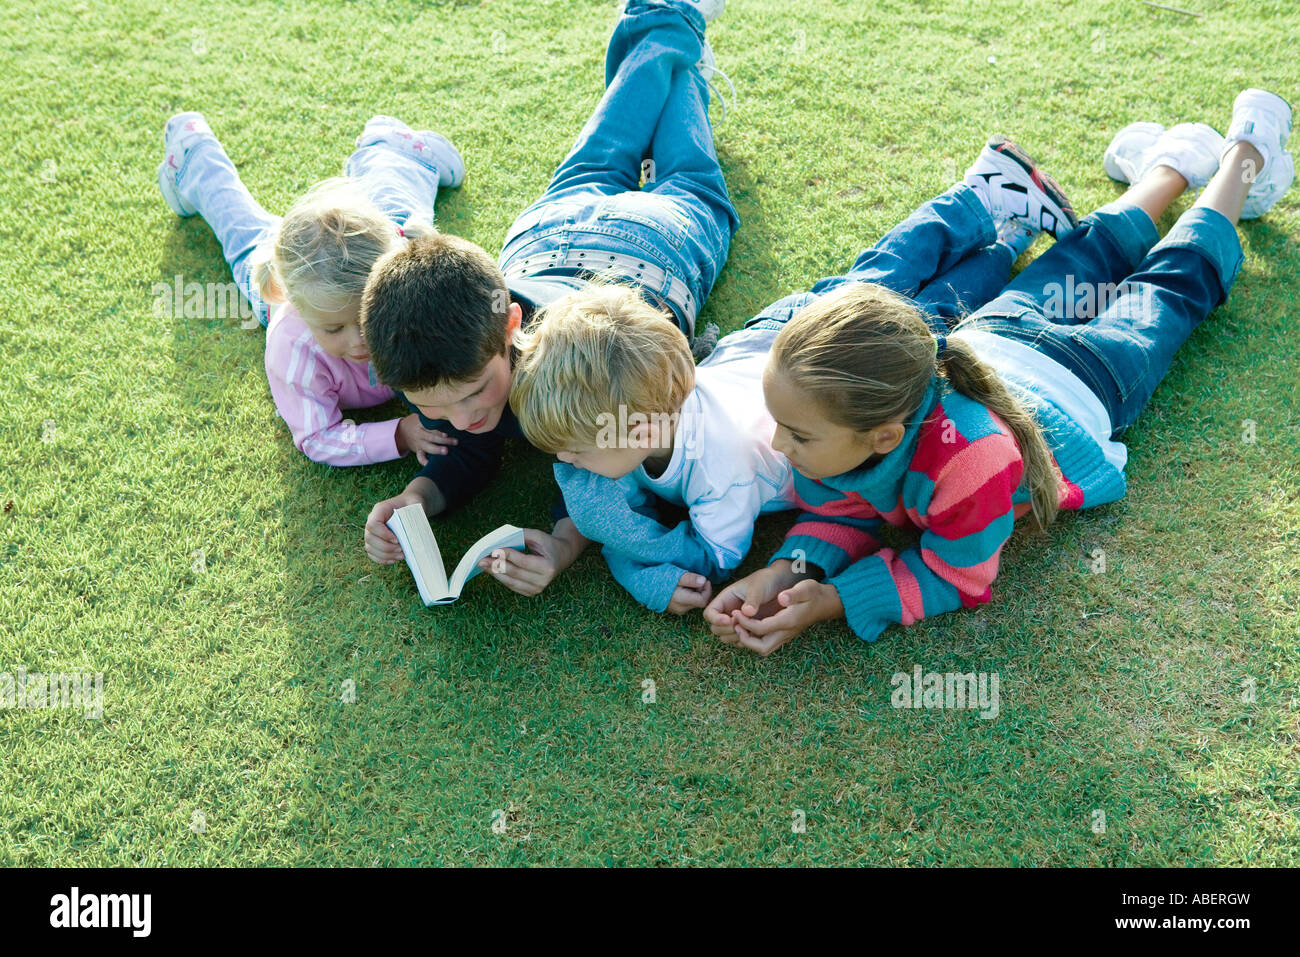 Children lying on grass together, reading - Stock Image